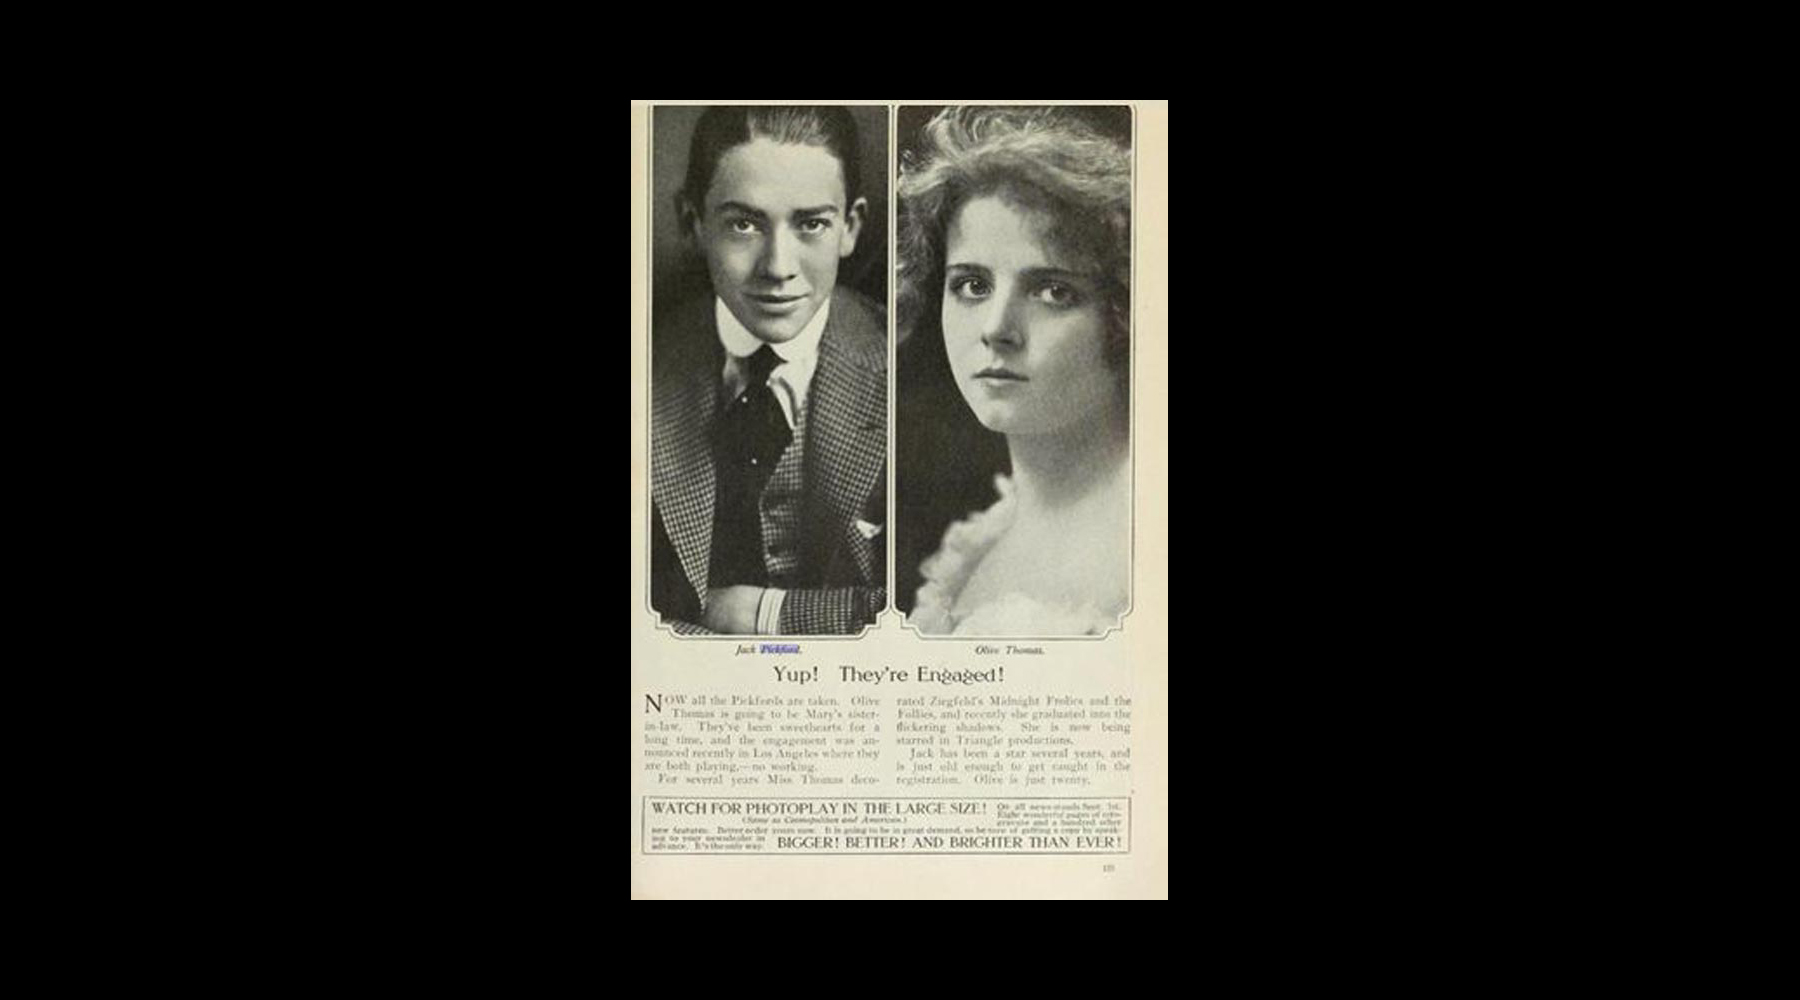 Olive and Jack Pickford, a famous actor, eloped on October 26, 1916. Their marriage was known to be tumultuous.